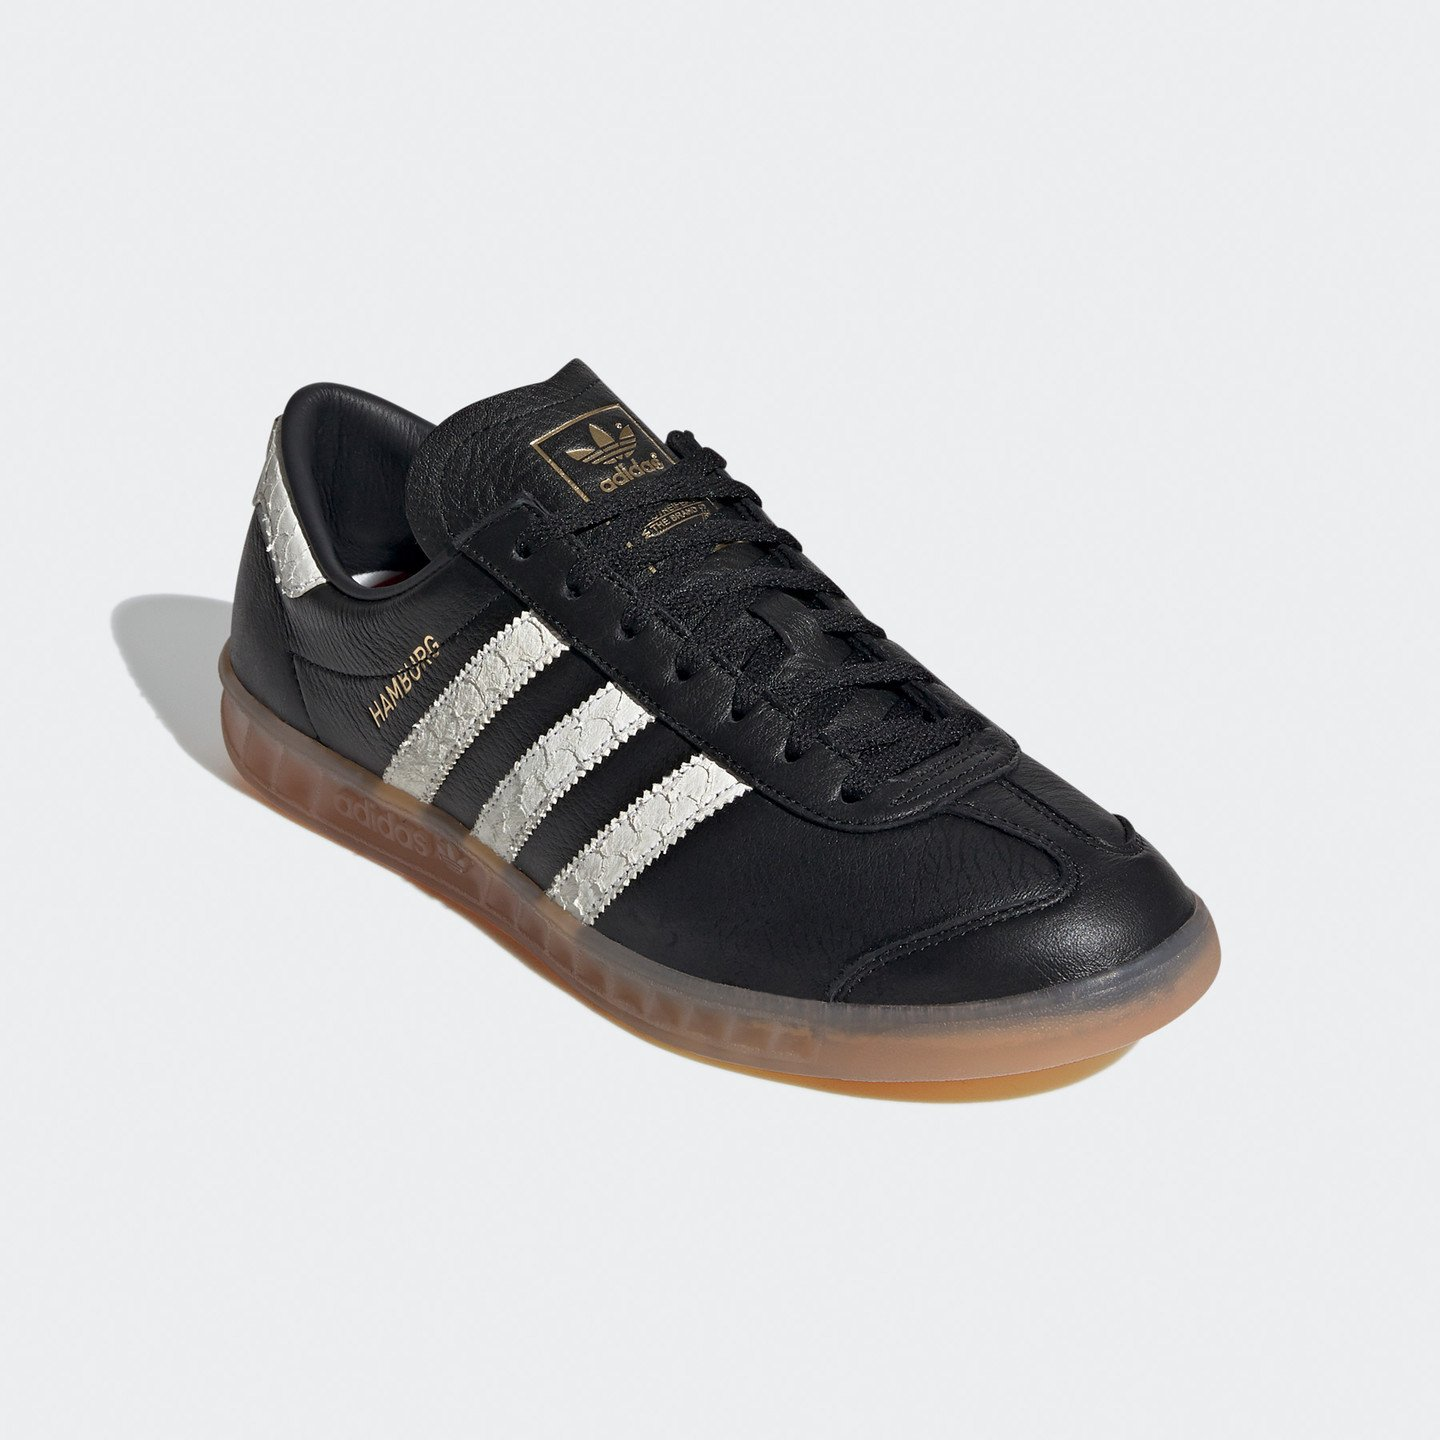 Adidas Hamburg 'Fischkopp' Core Black / Cloud White / Lush Red EF5674